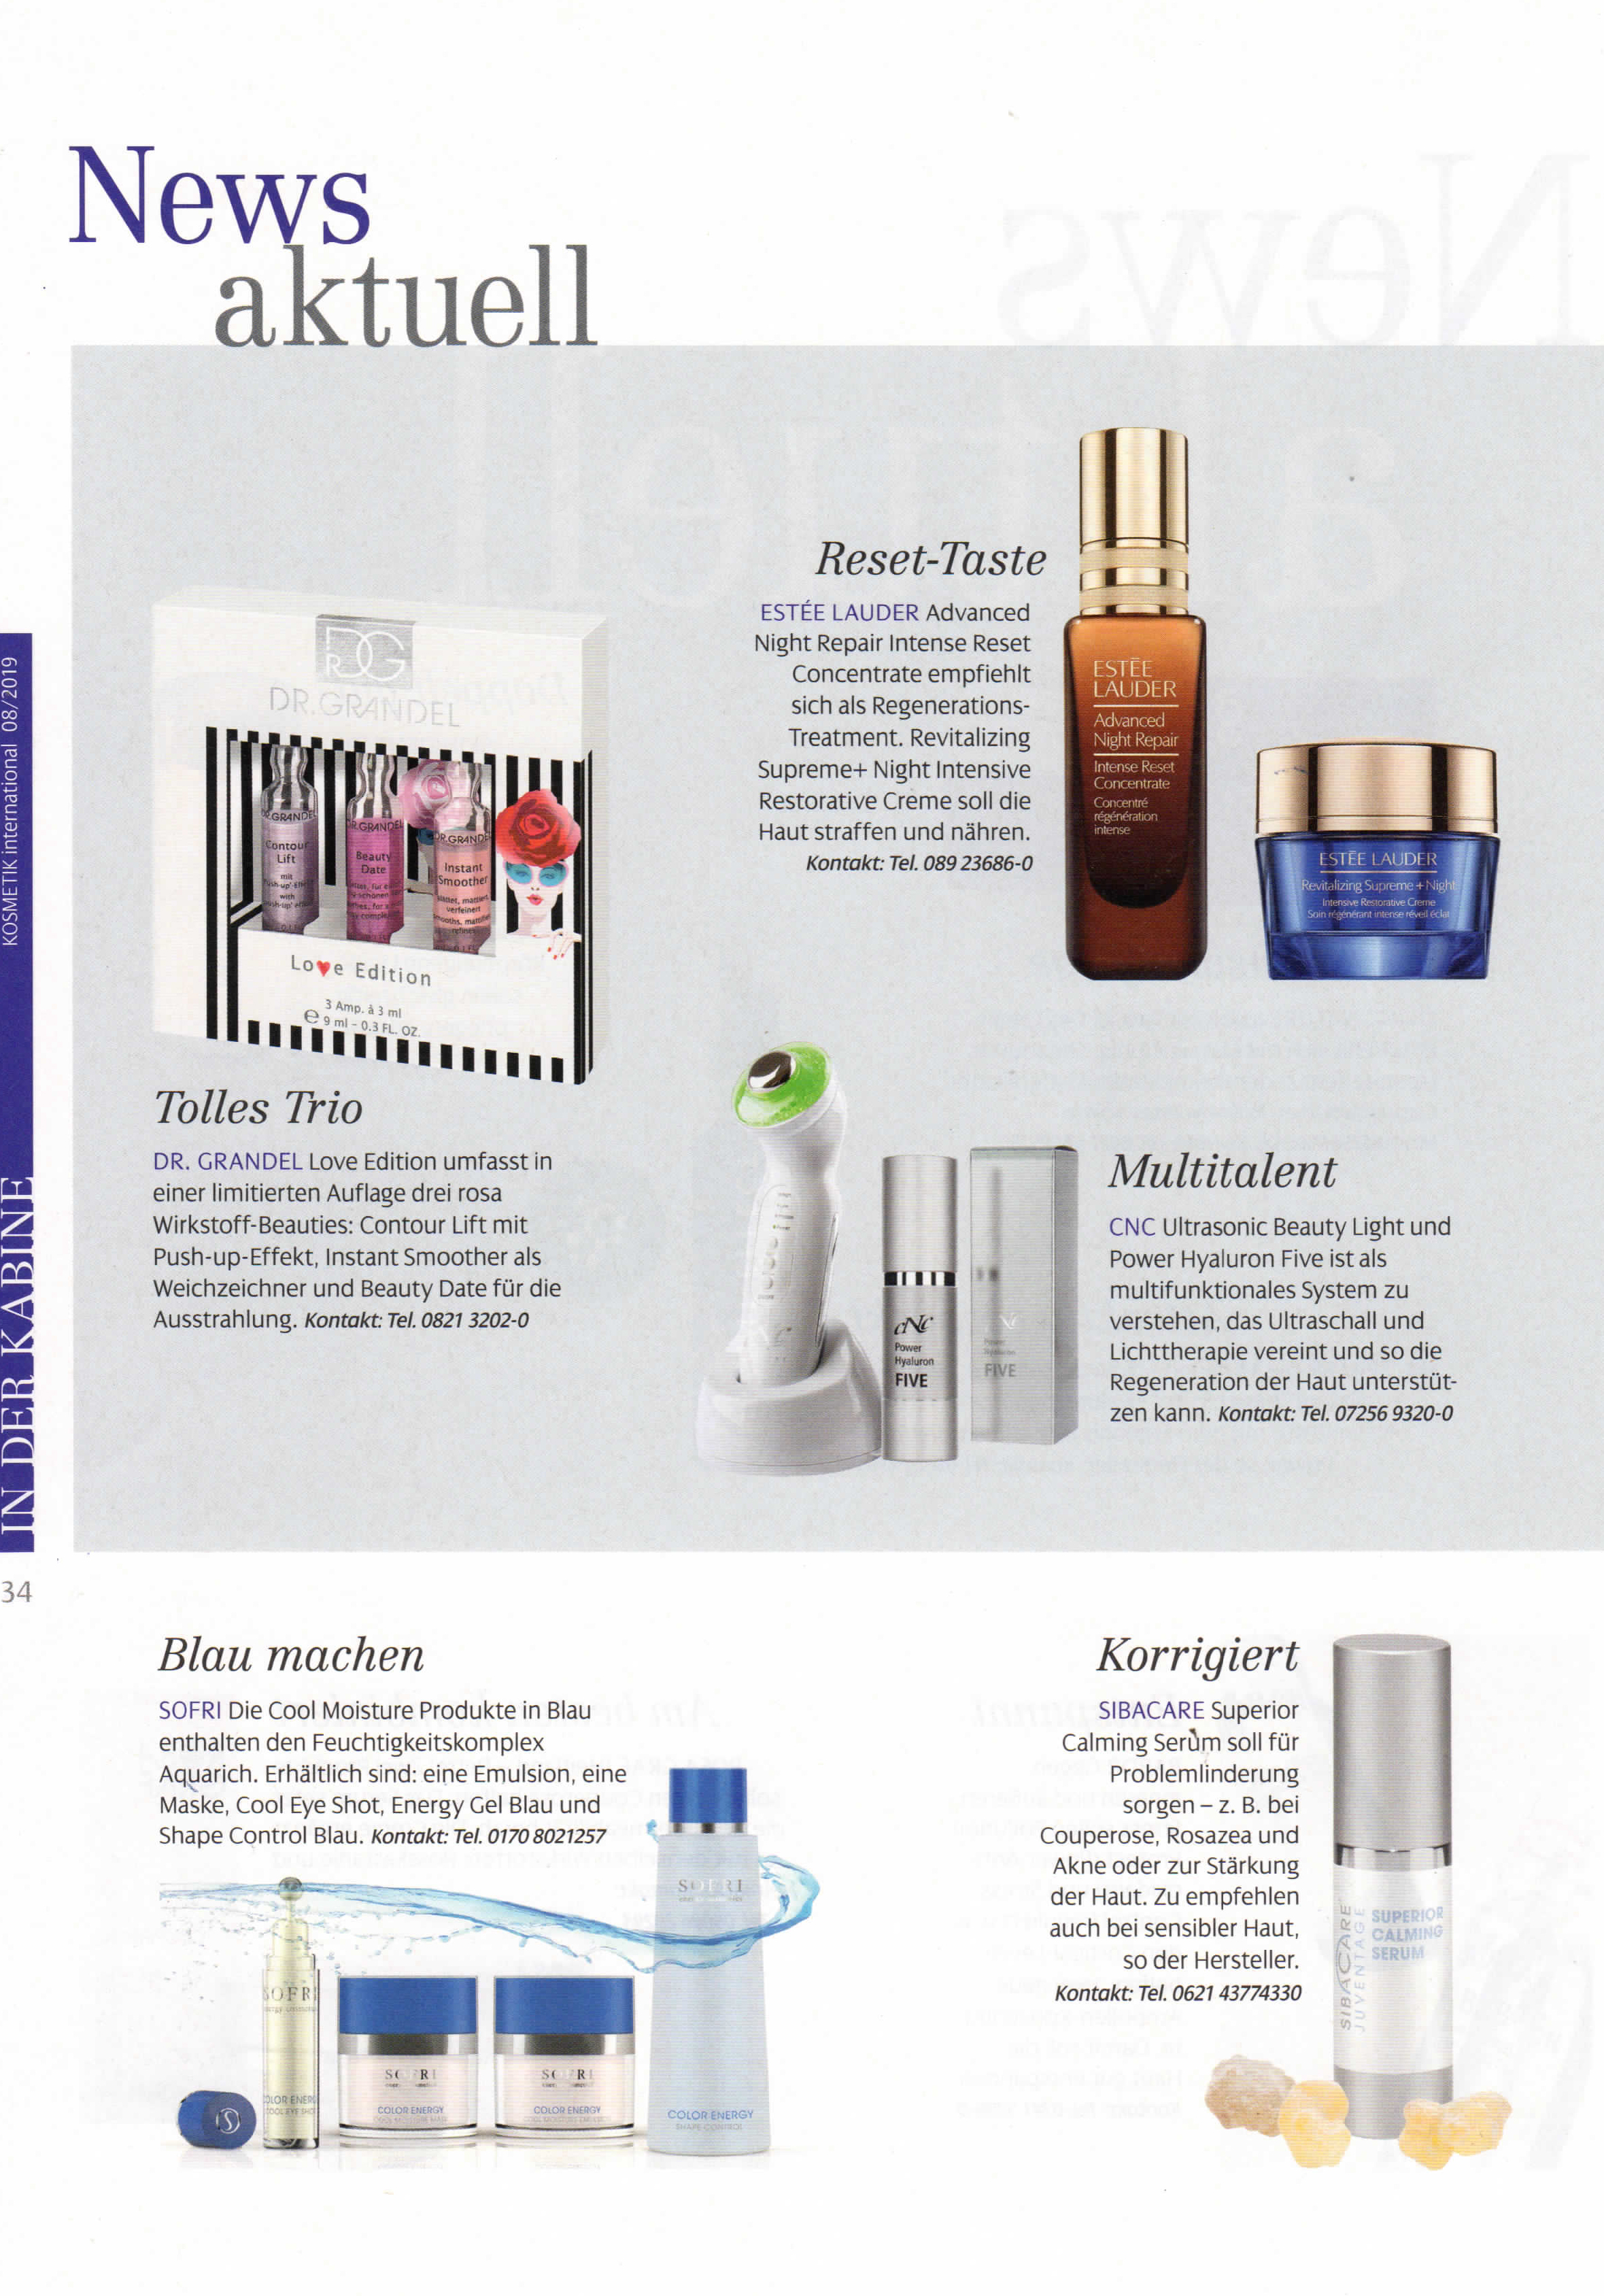 Blau machen, Kosmetik International im August 2019